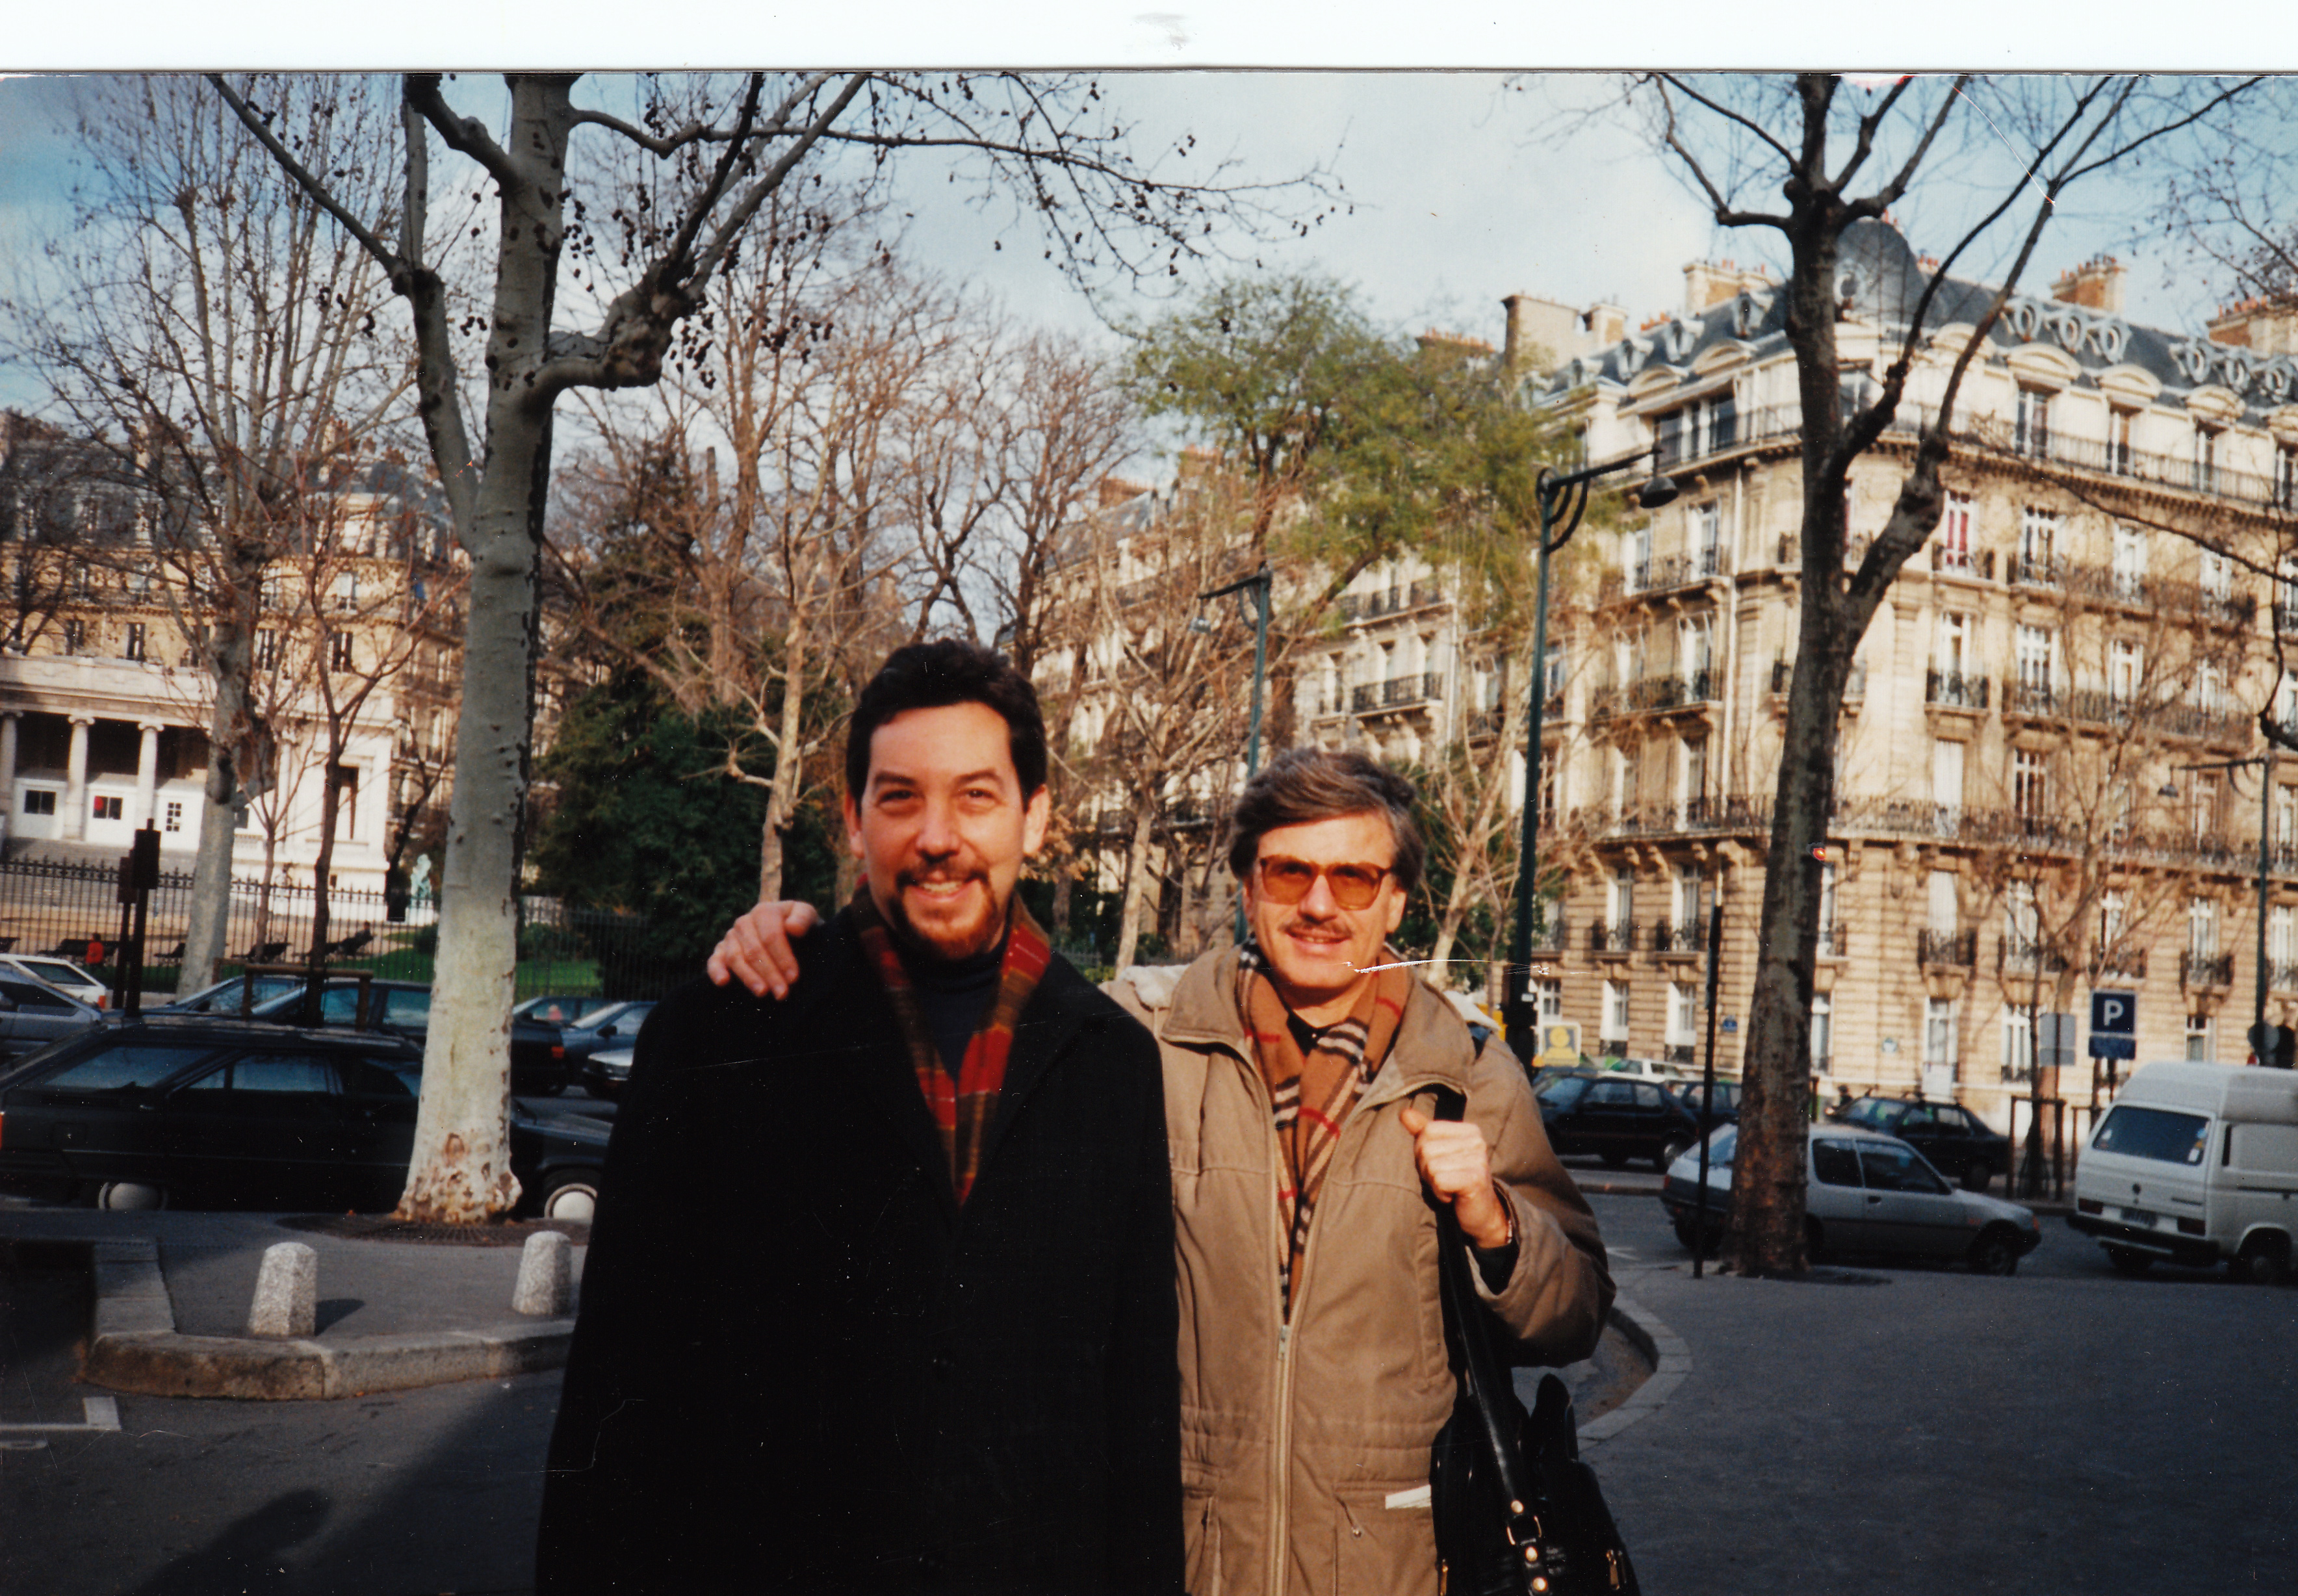 Figure 20.7. Alan with Michael Löwy, Paris, November 1992. Credit: Personal collection of Alan M. Wald.